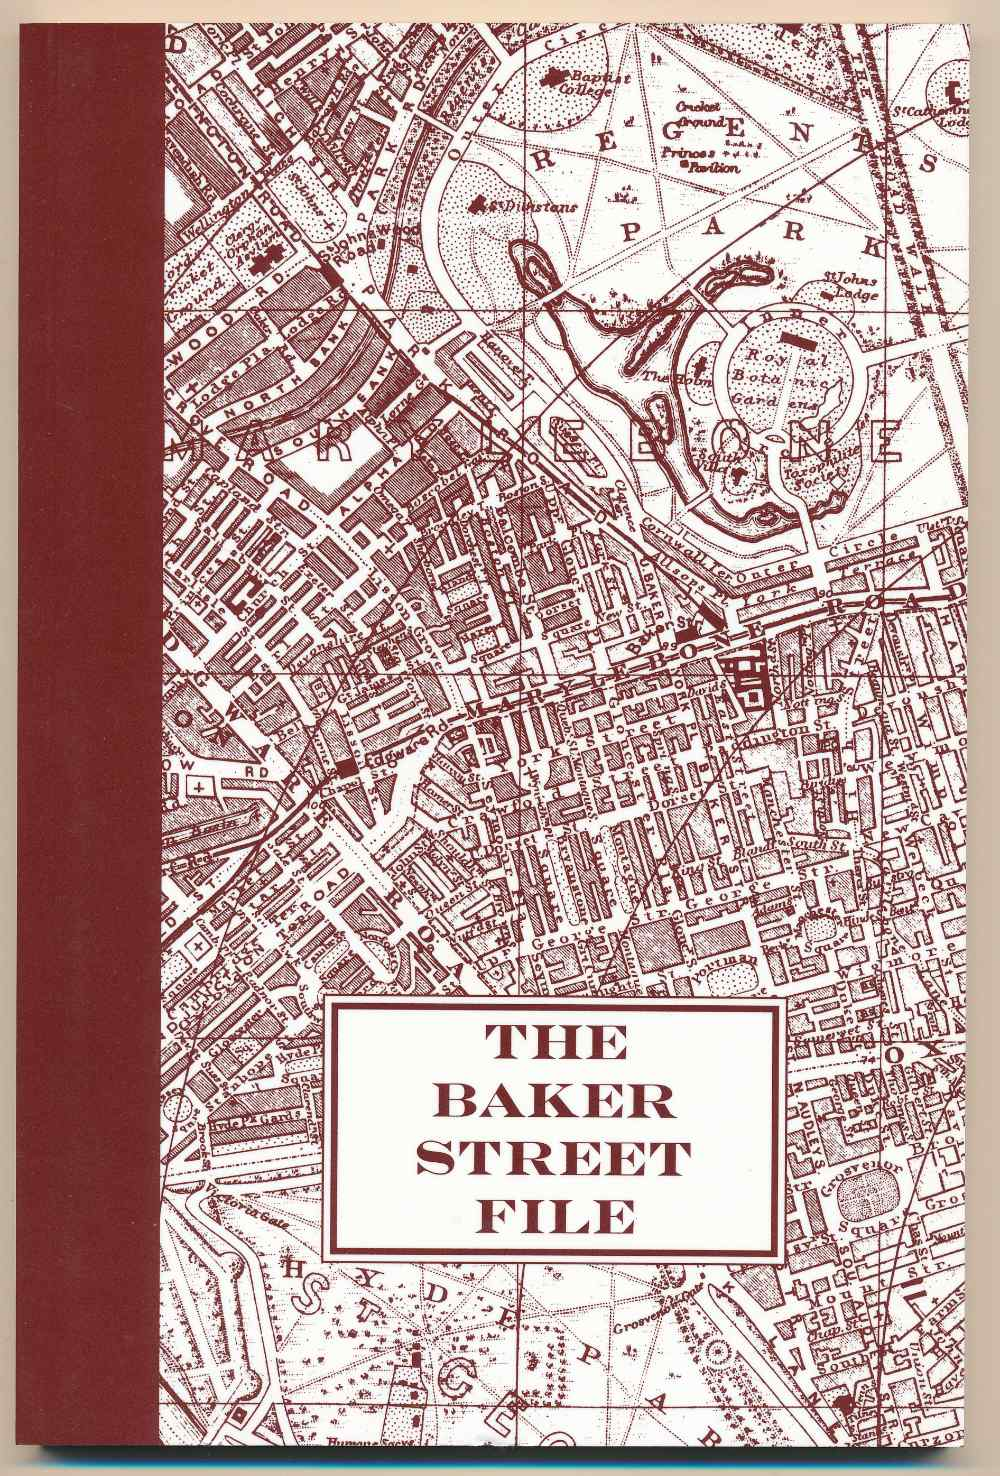 The Baker Street file : a guide to the appearance and habits of Sherlock Holmes and Dr Watson specially prepared for the Granada television series The Adventures of Sherlock Holmes